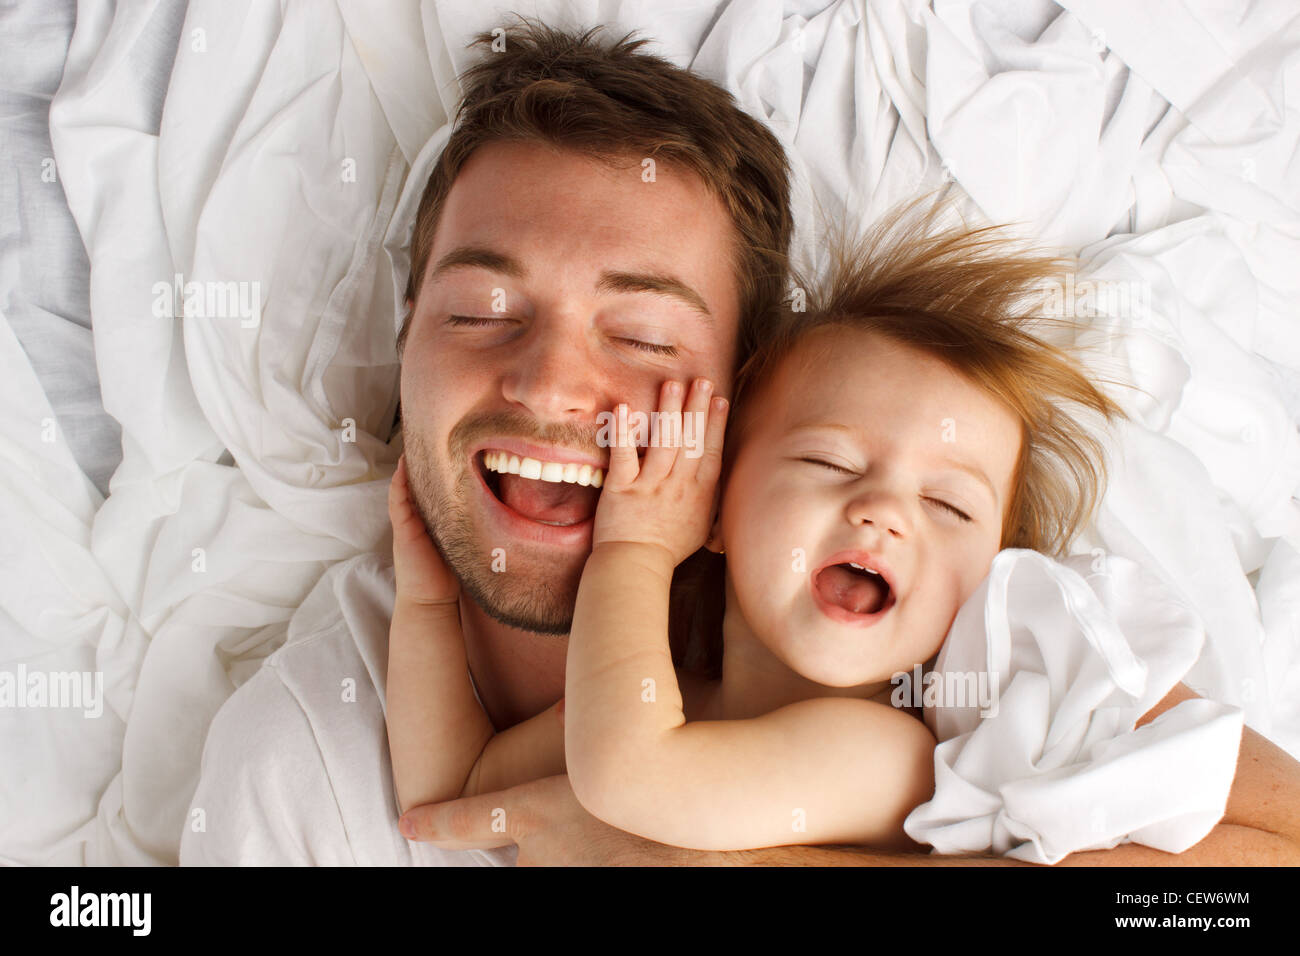 Father and daughter laughing and bonding Stock Photo